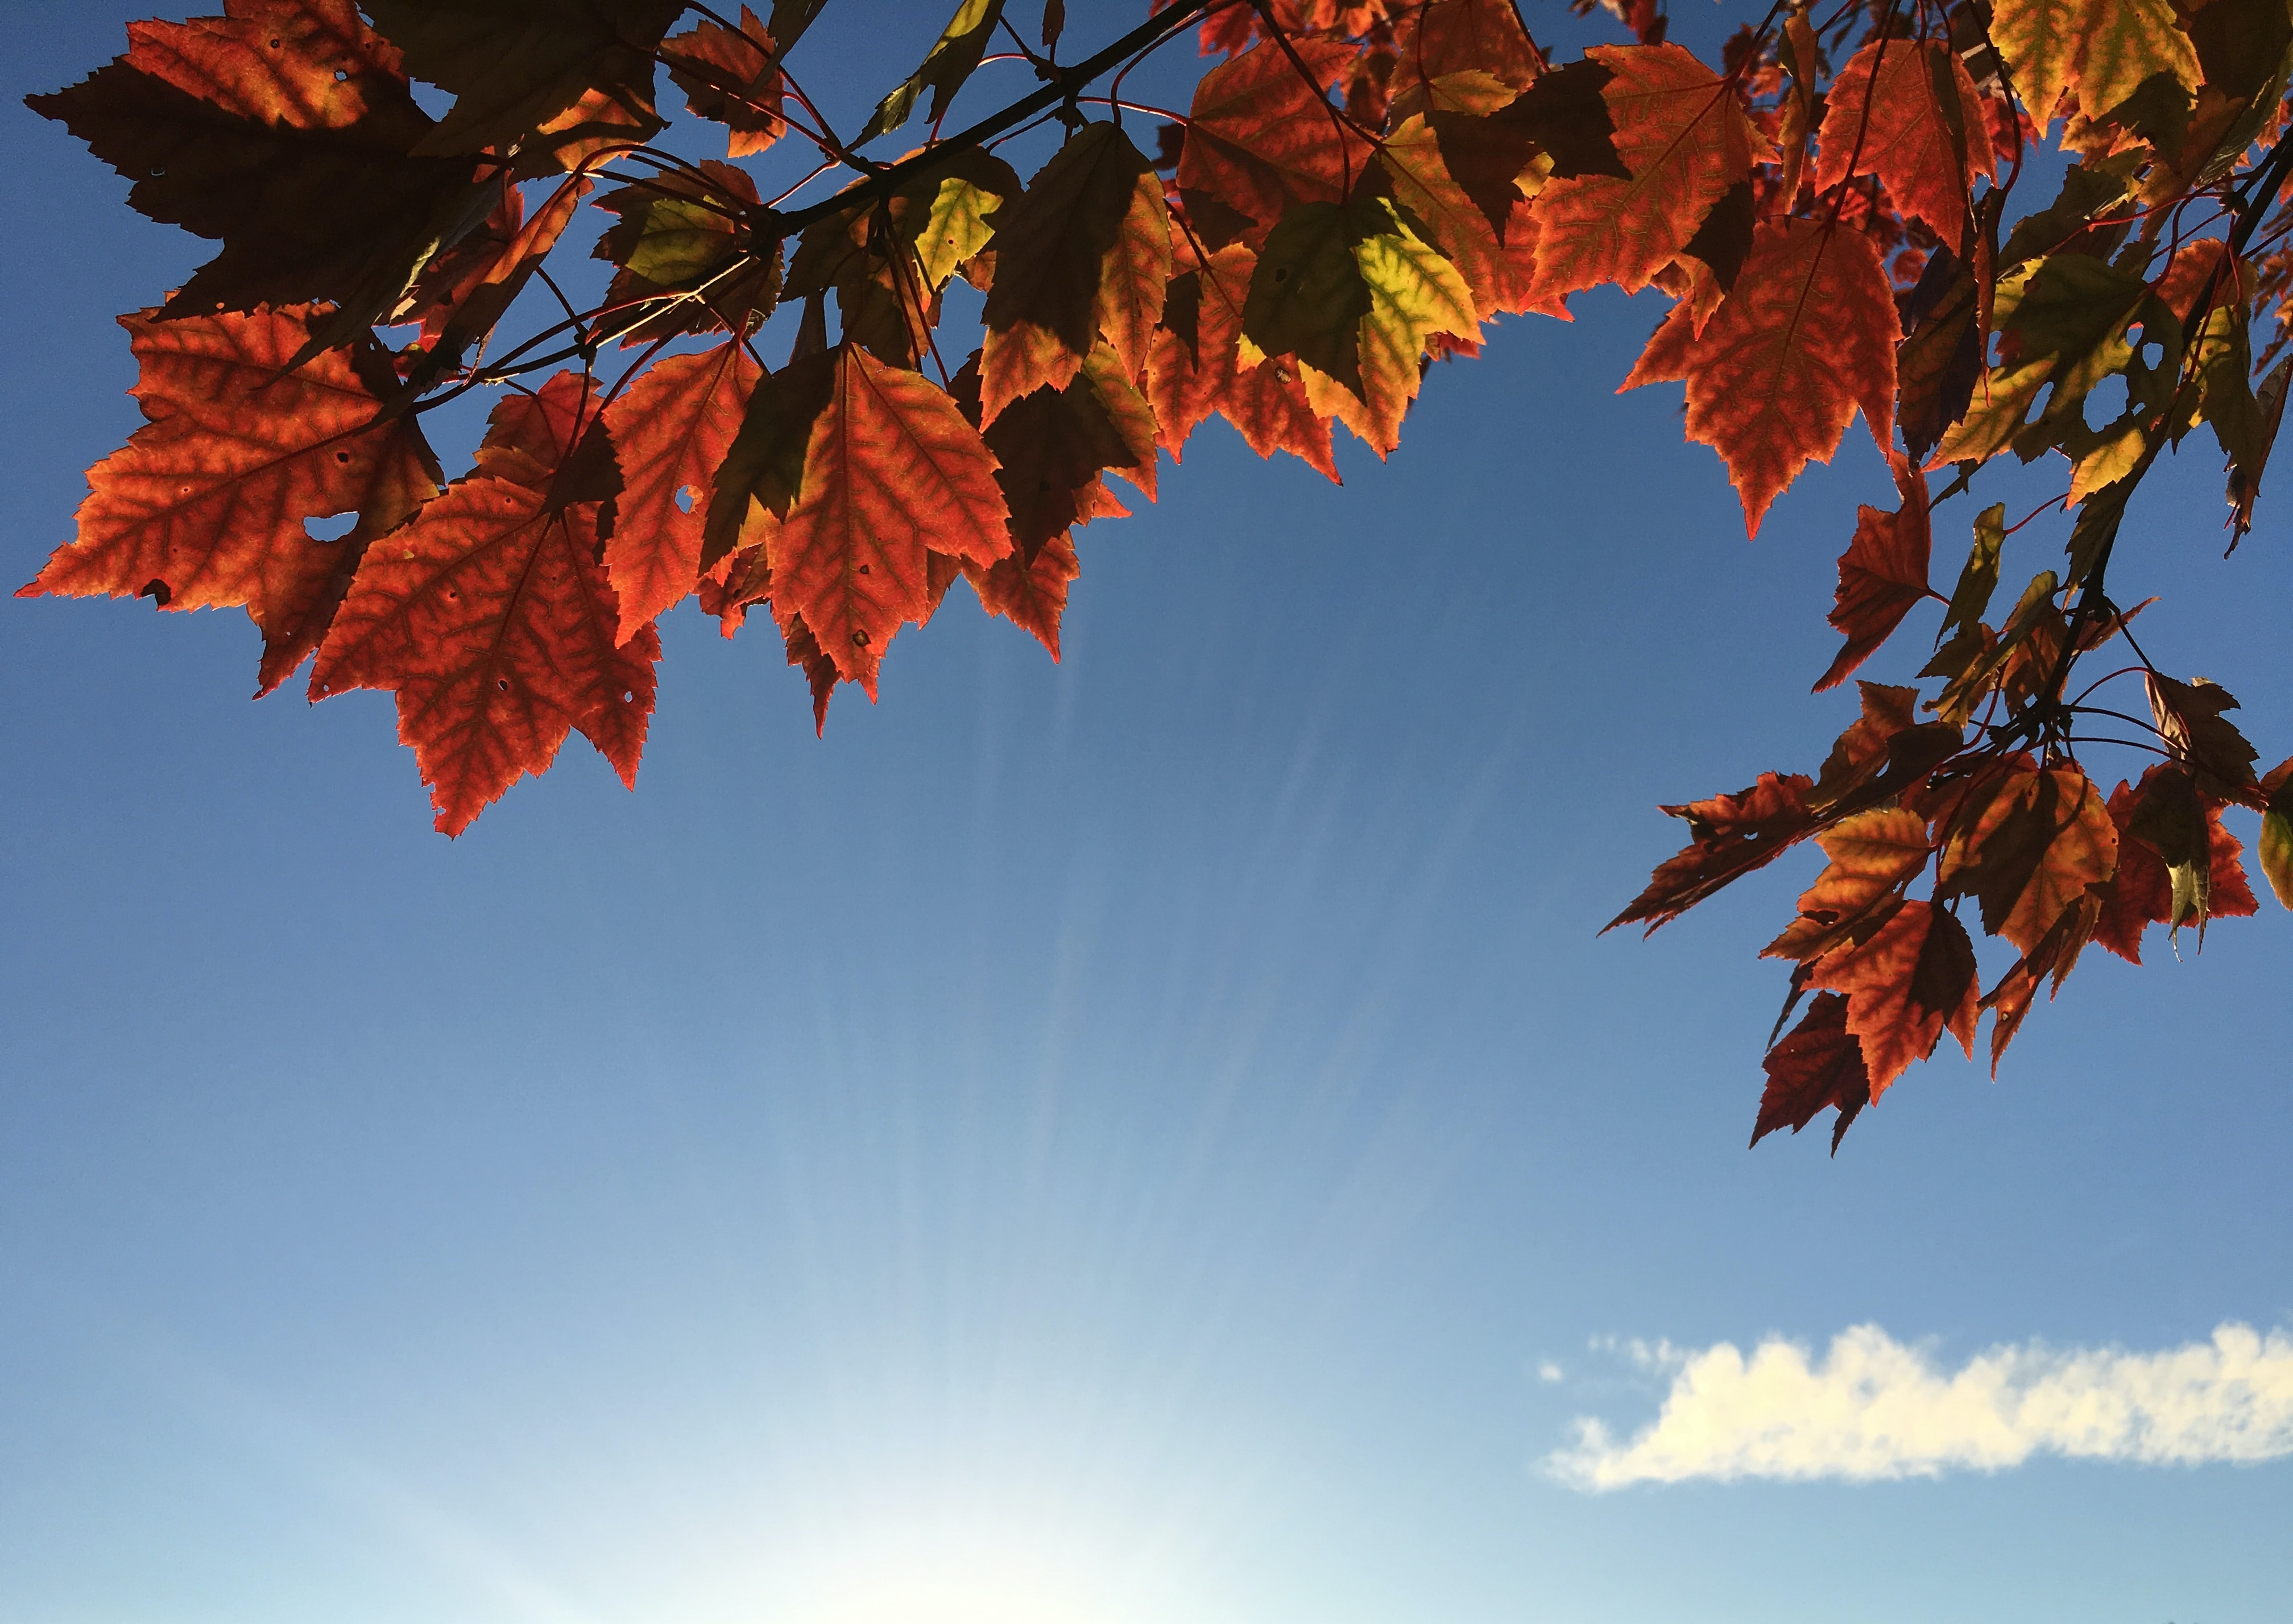 Bright red and orange maple leaves against the bright blue sunny sky